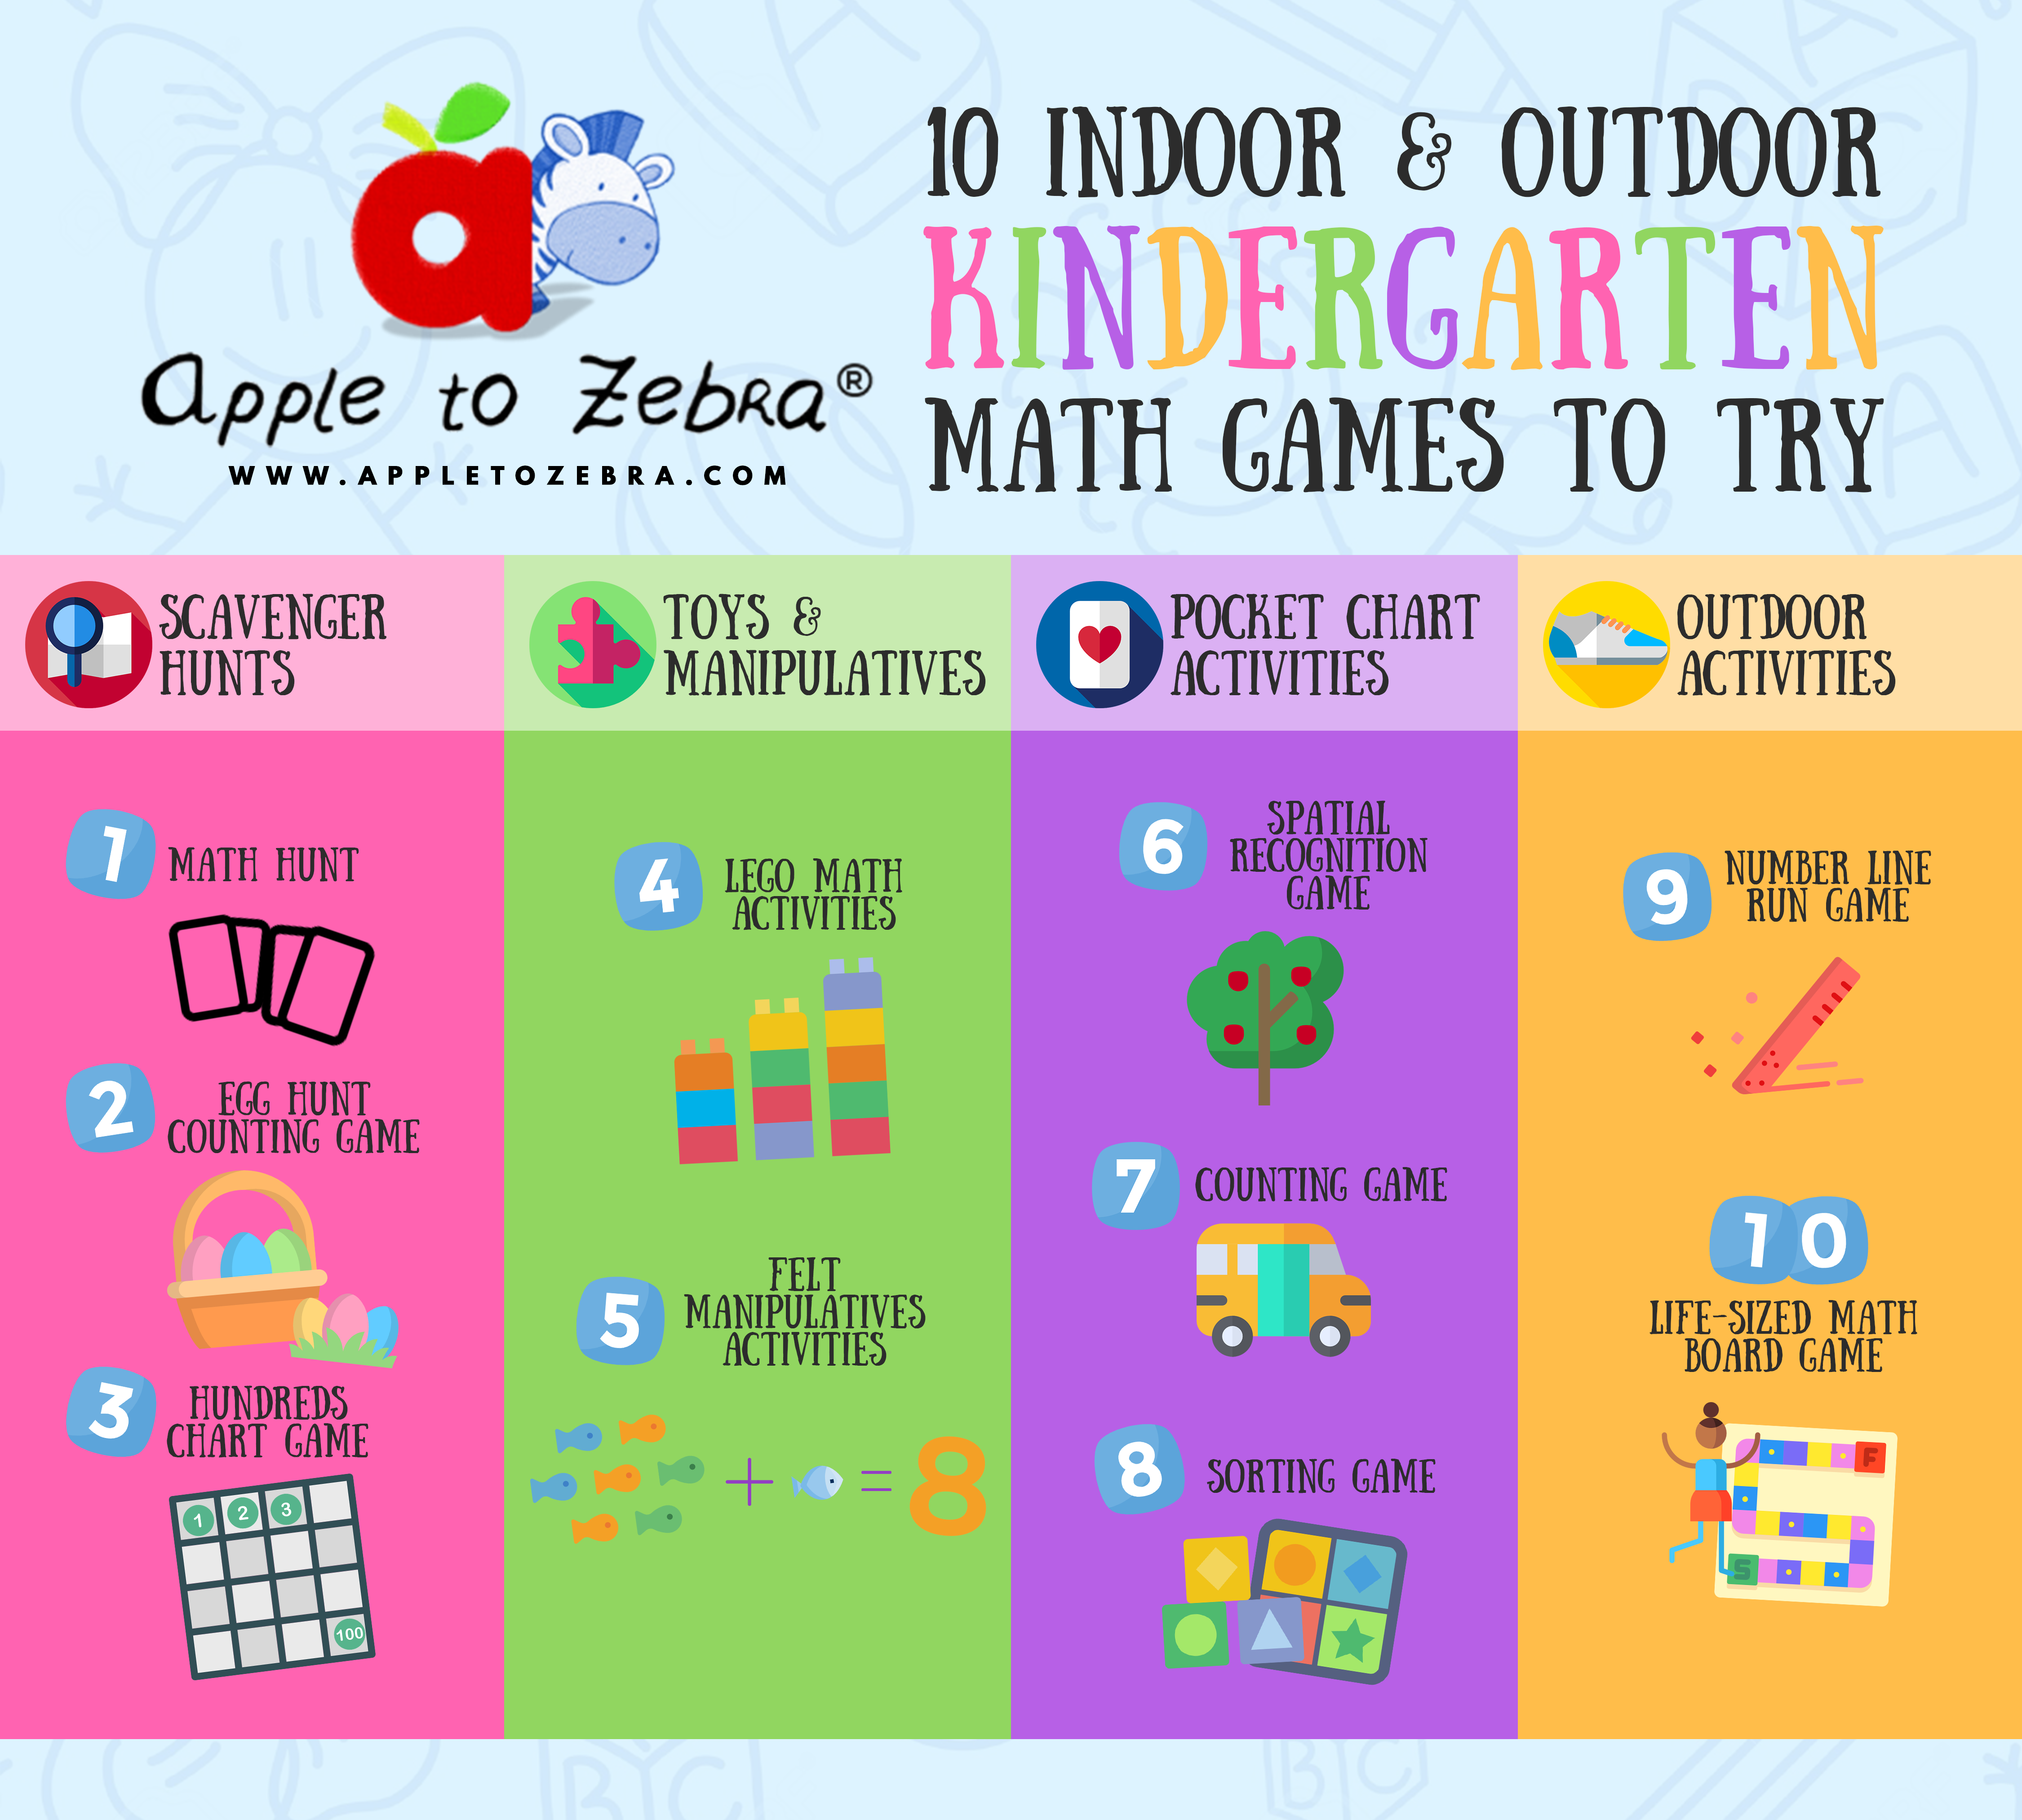 10 Indoor And Outdoor Kindergarten Math Games To Try Math Games Math Games For Kids Kindergarten Math